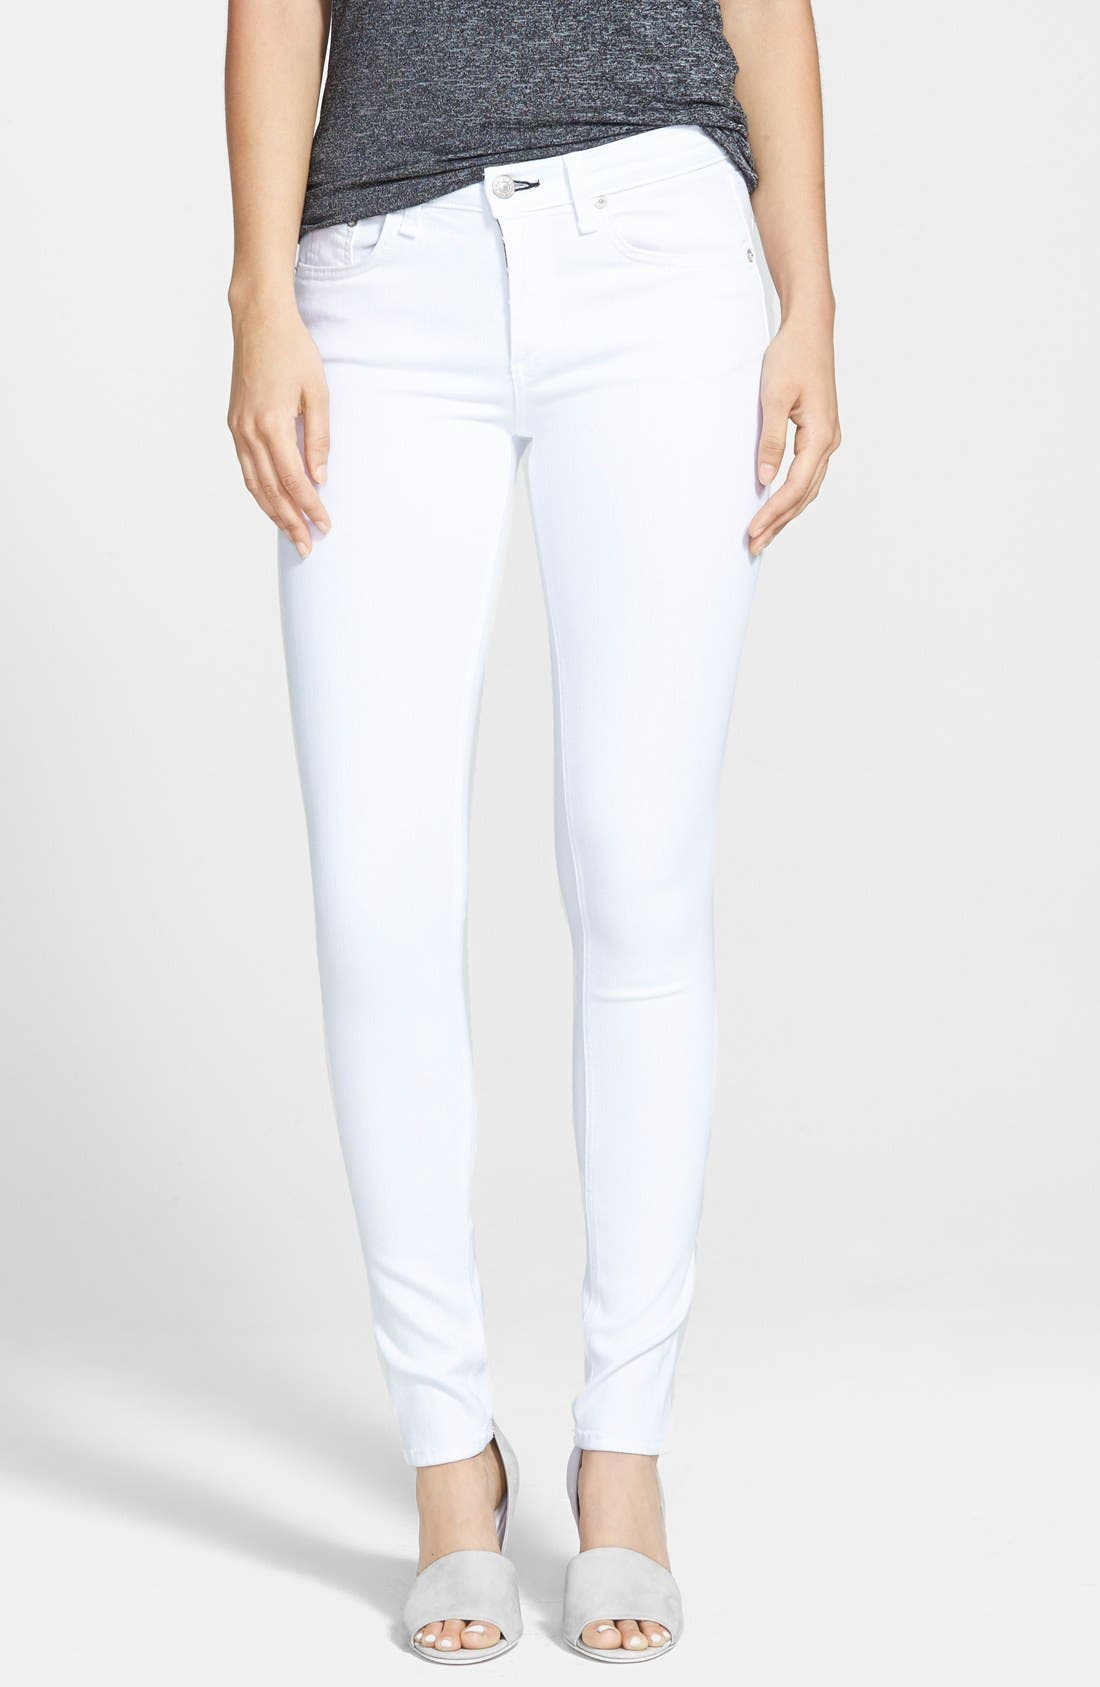 'The Skinny' Jeans,                             Main thumbnail 1, color,                             Bright White